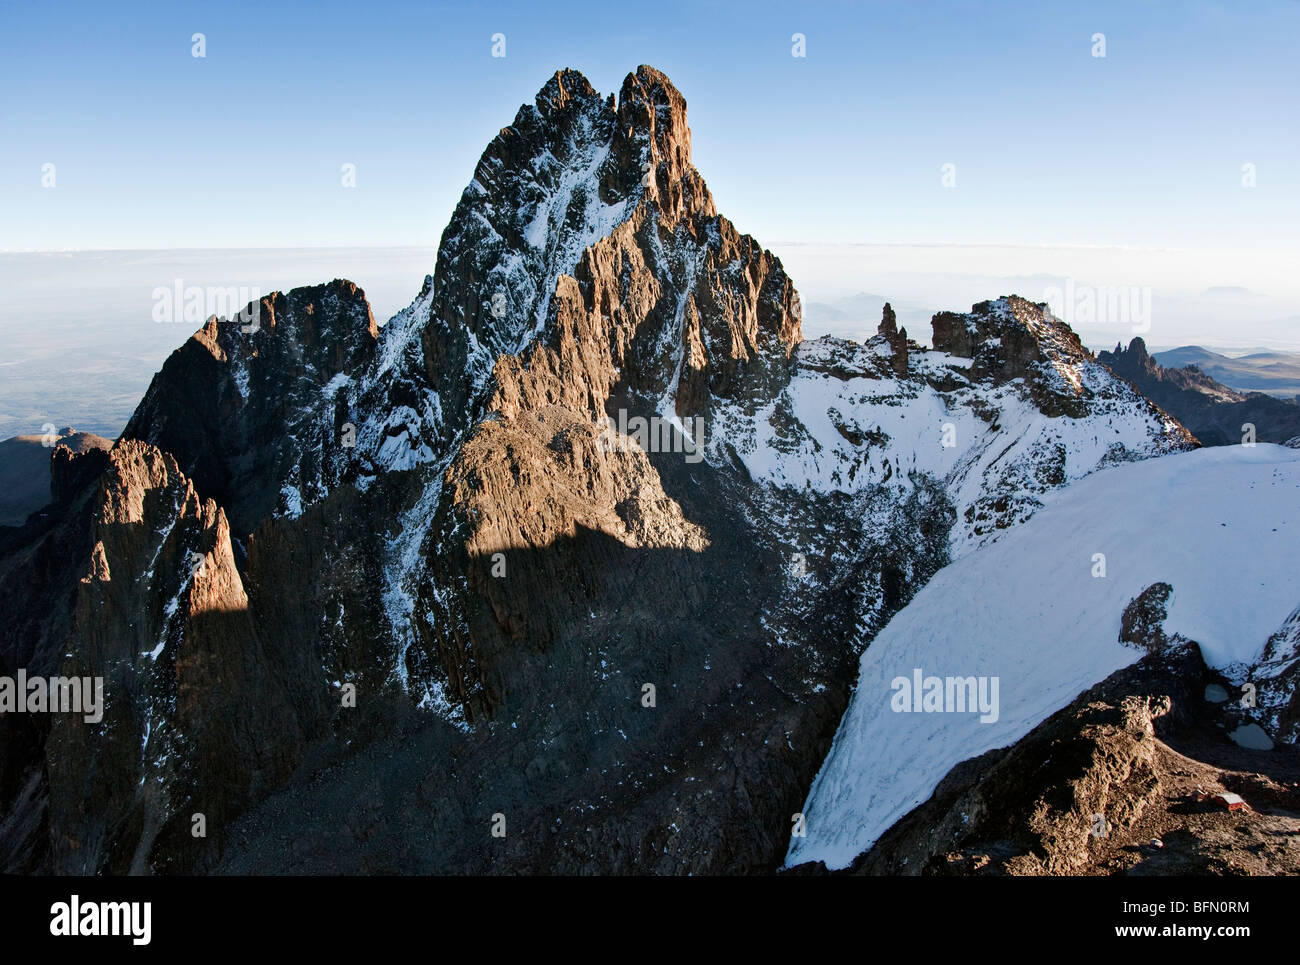 Kenya. The snow-dusted peaks of Mount Kenya, Africa  s second highest mountain, with Lewis glacier in the foreground. - Stock Image